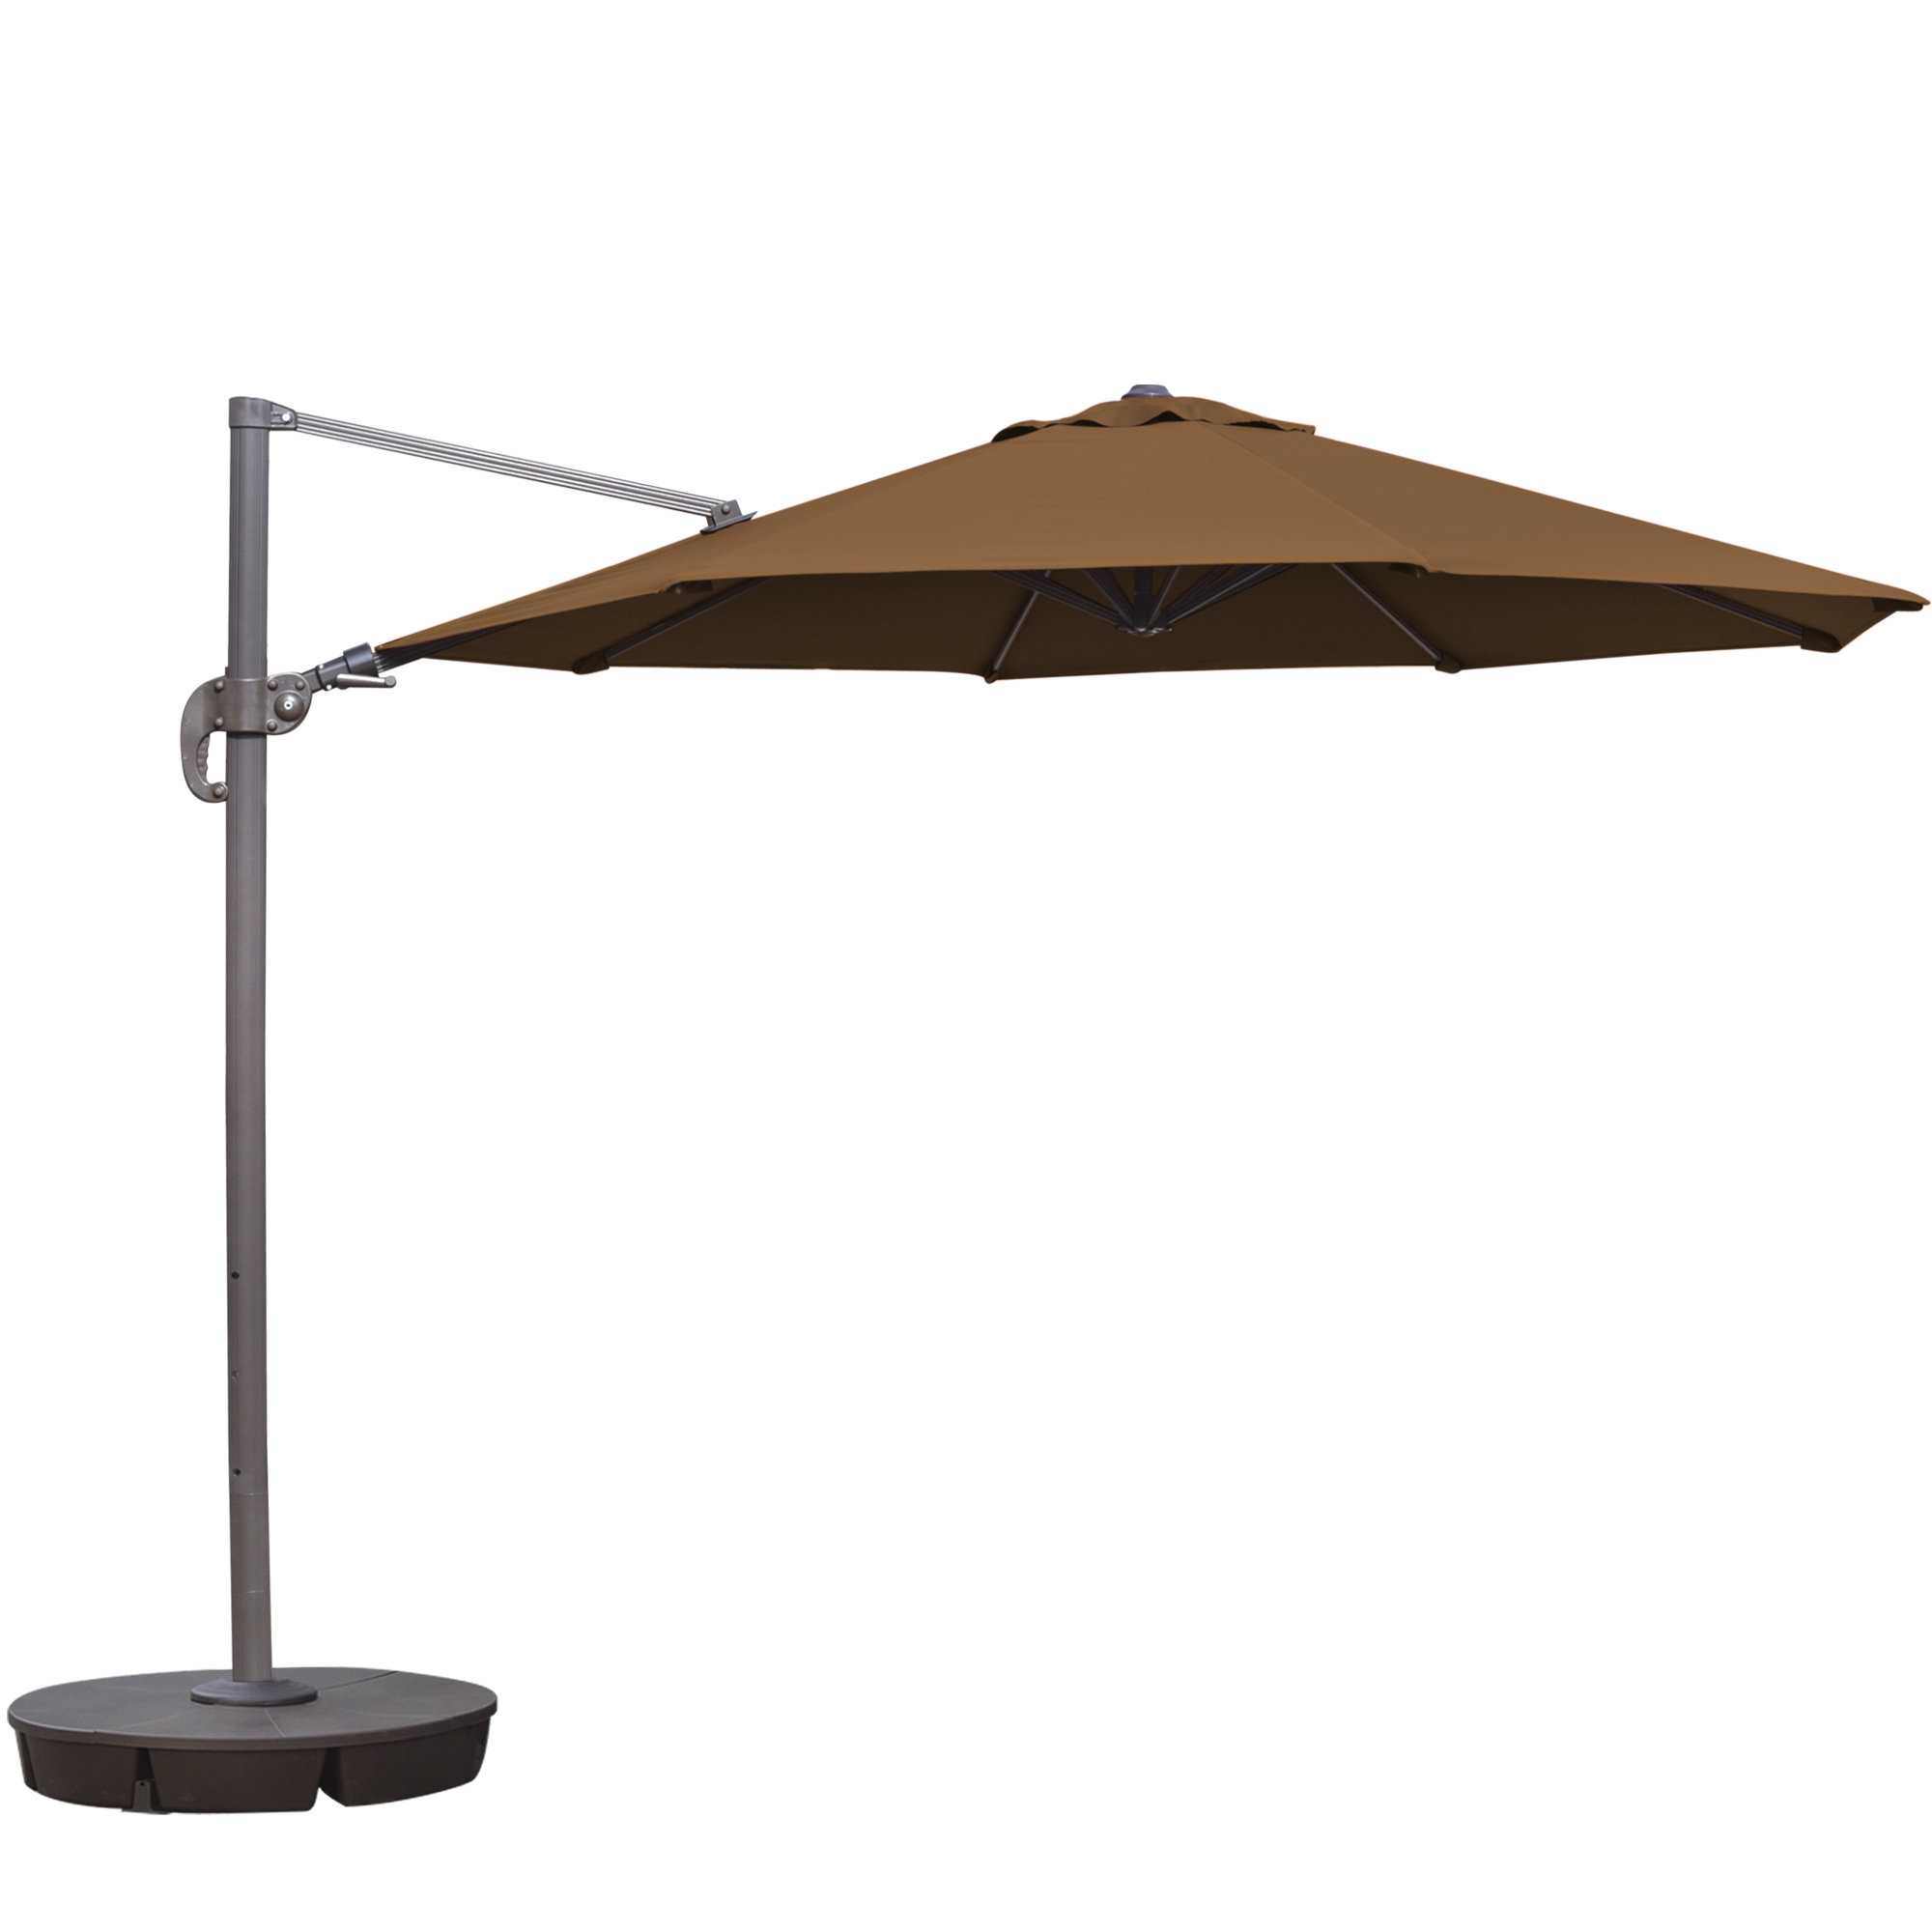 patio shade cantilever chaiseounges your with for double home white plants umbrella chairs breathtaking bistro ideas tents and what potted setawn furniture the atio decoration best